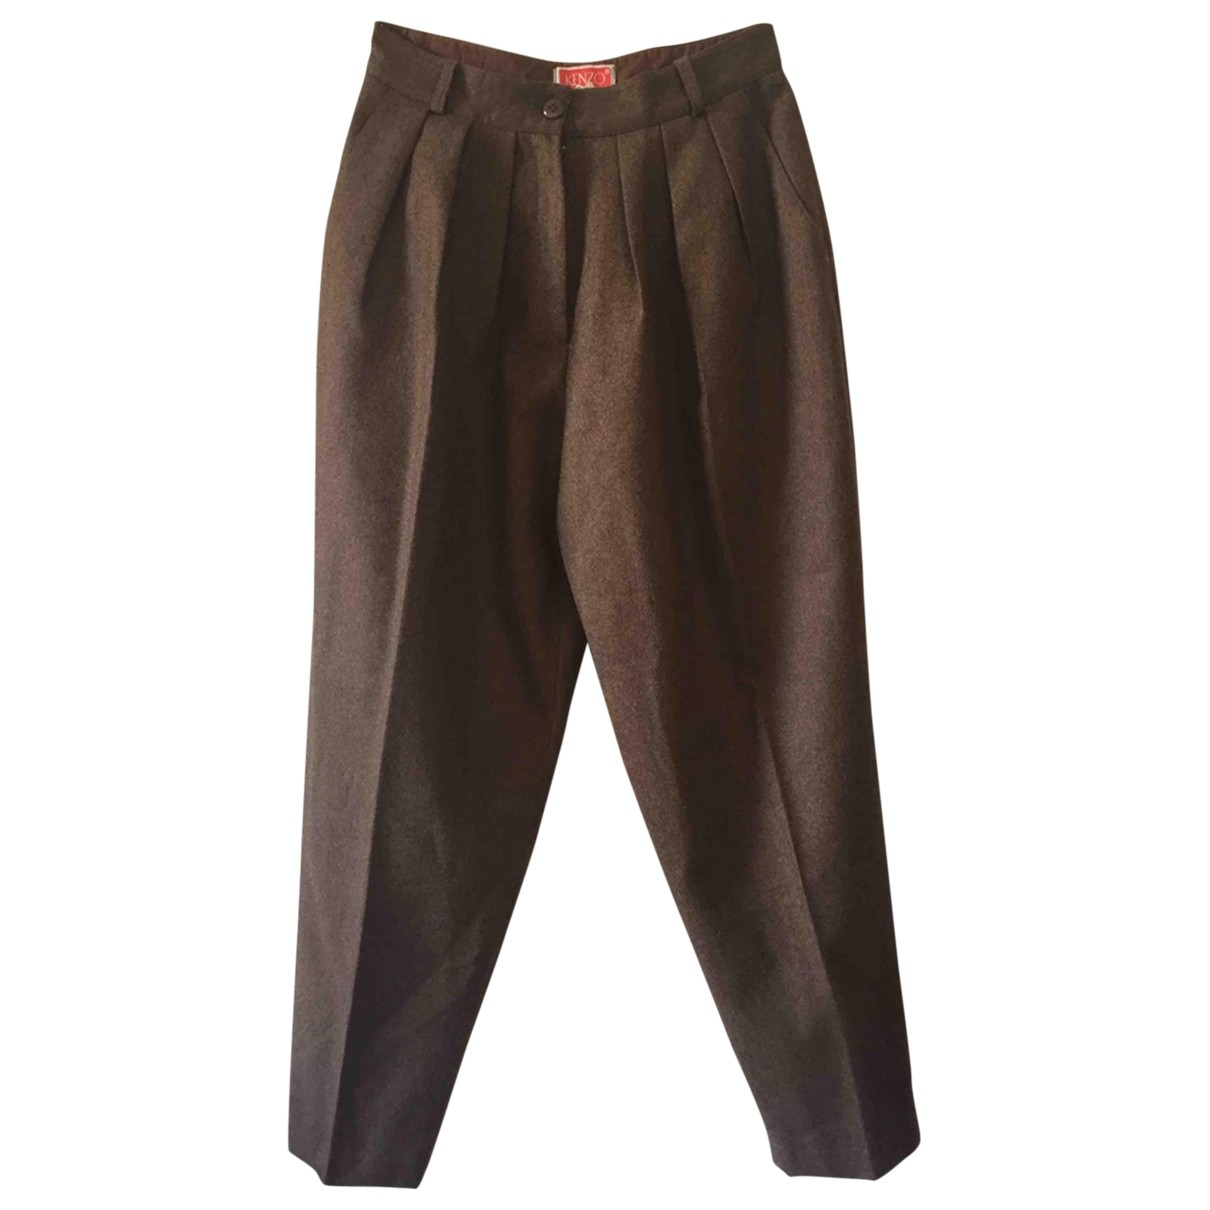 Kenzo \N Brown Cotton Trousers for Women 40 FR